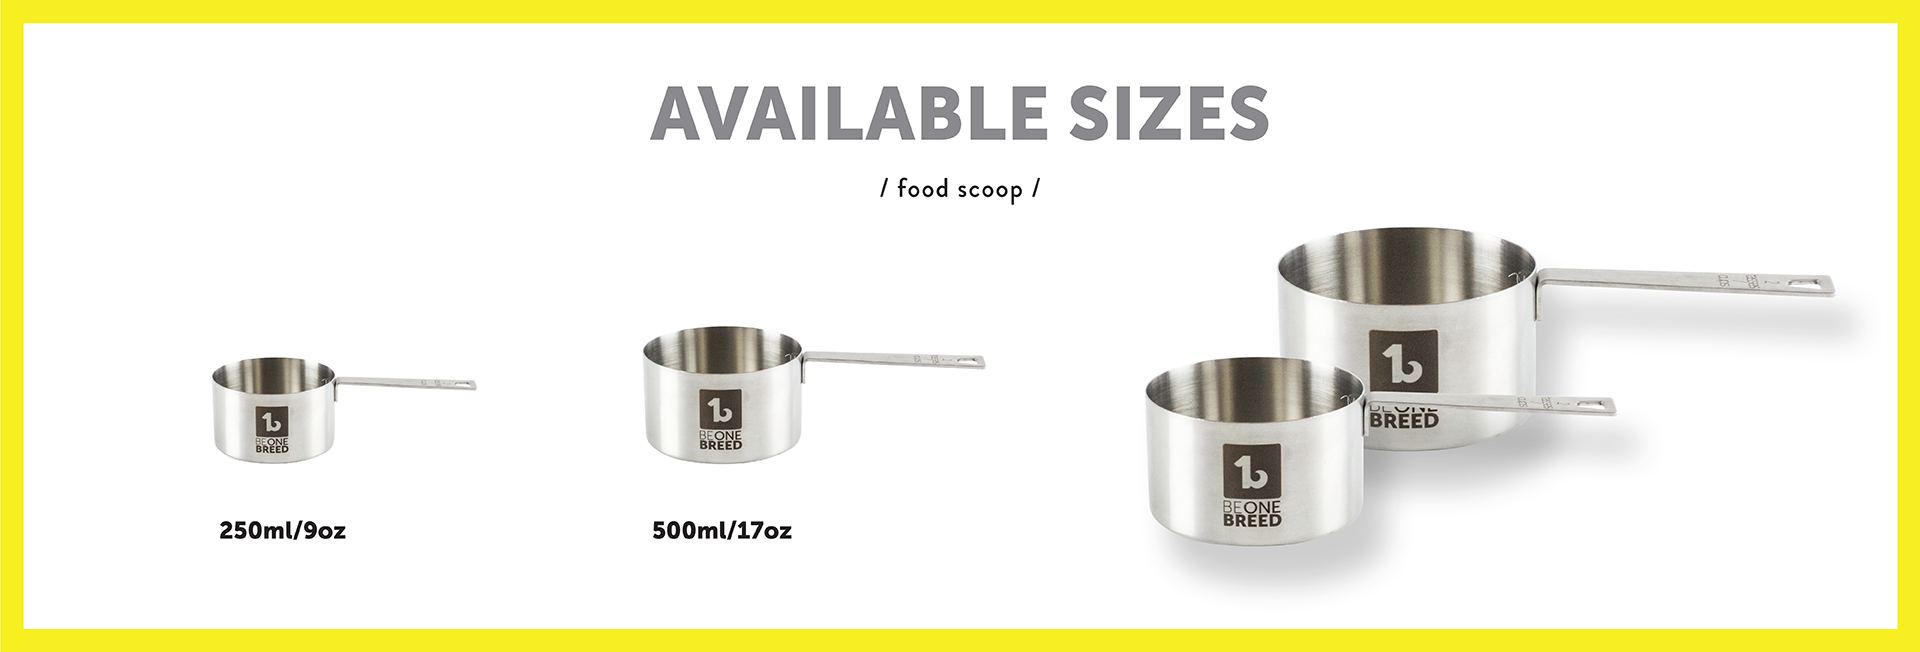 dimensions-food-scoop-for-dogs-english